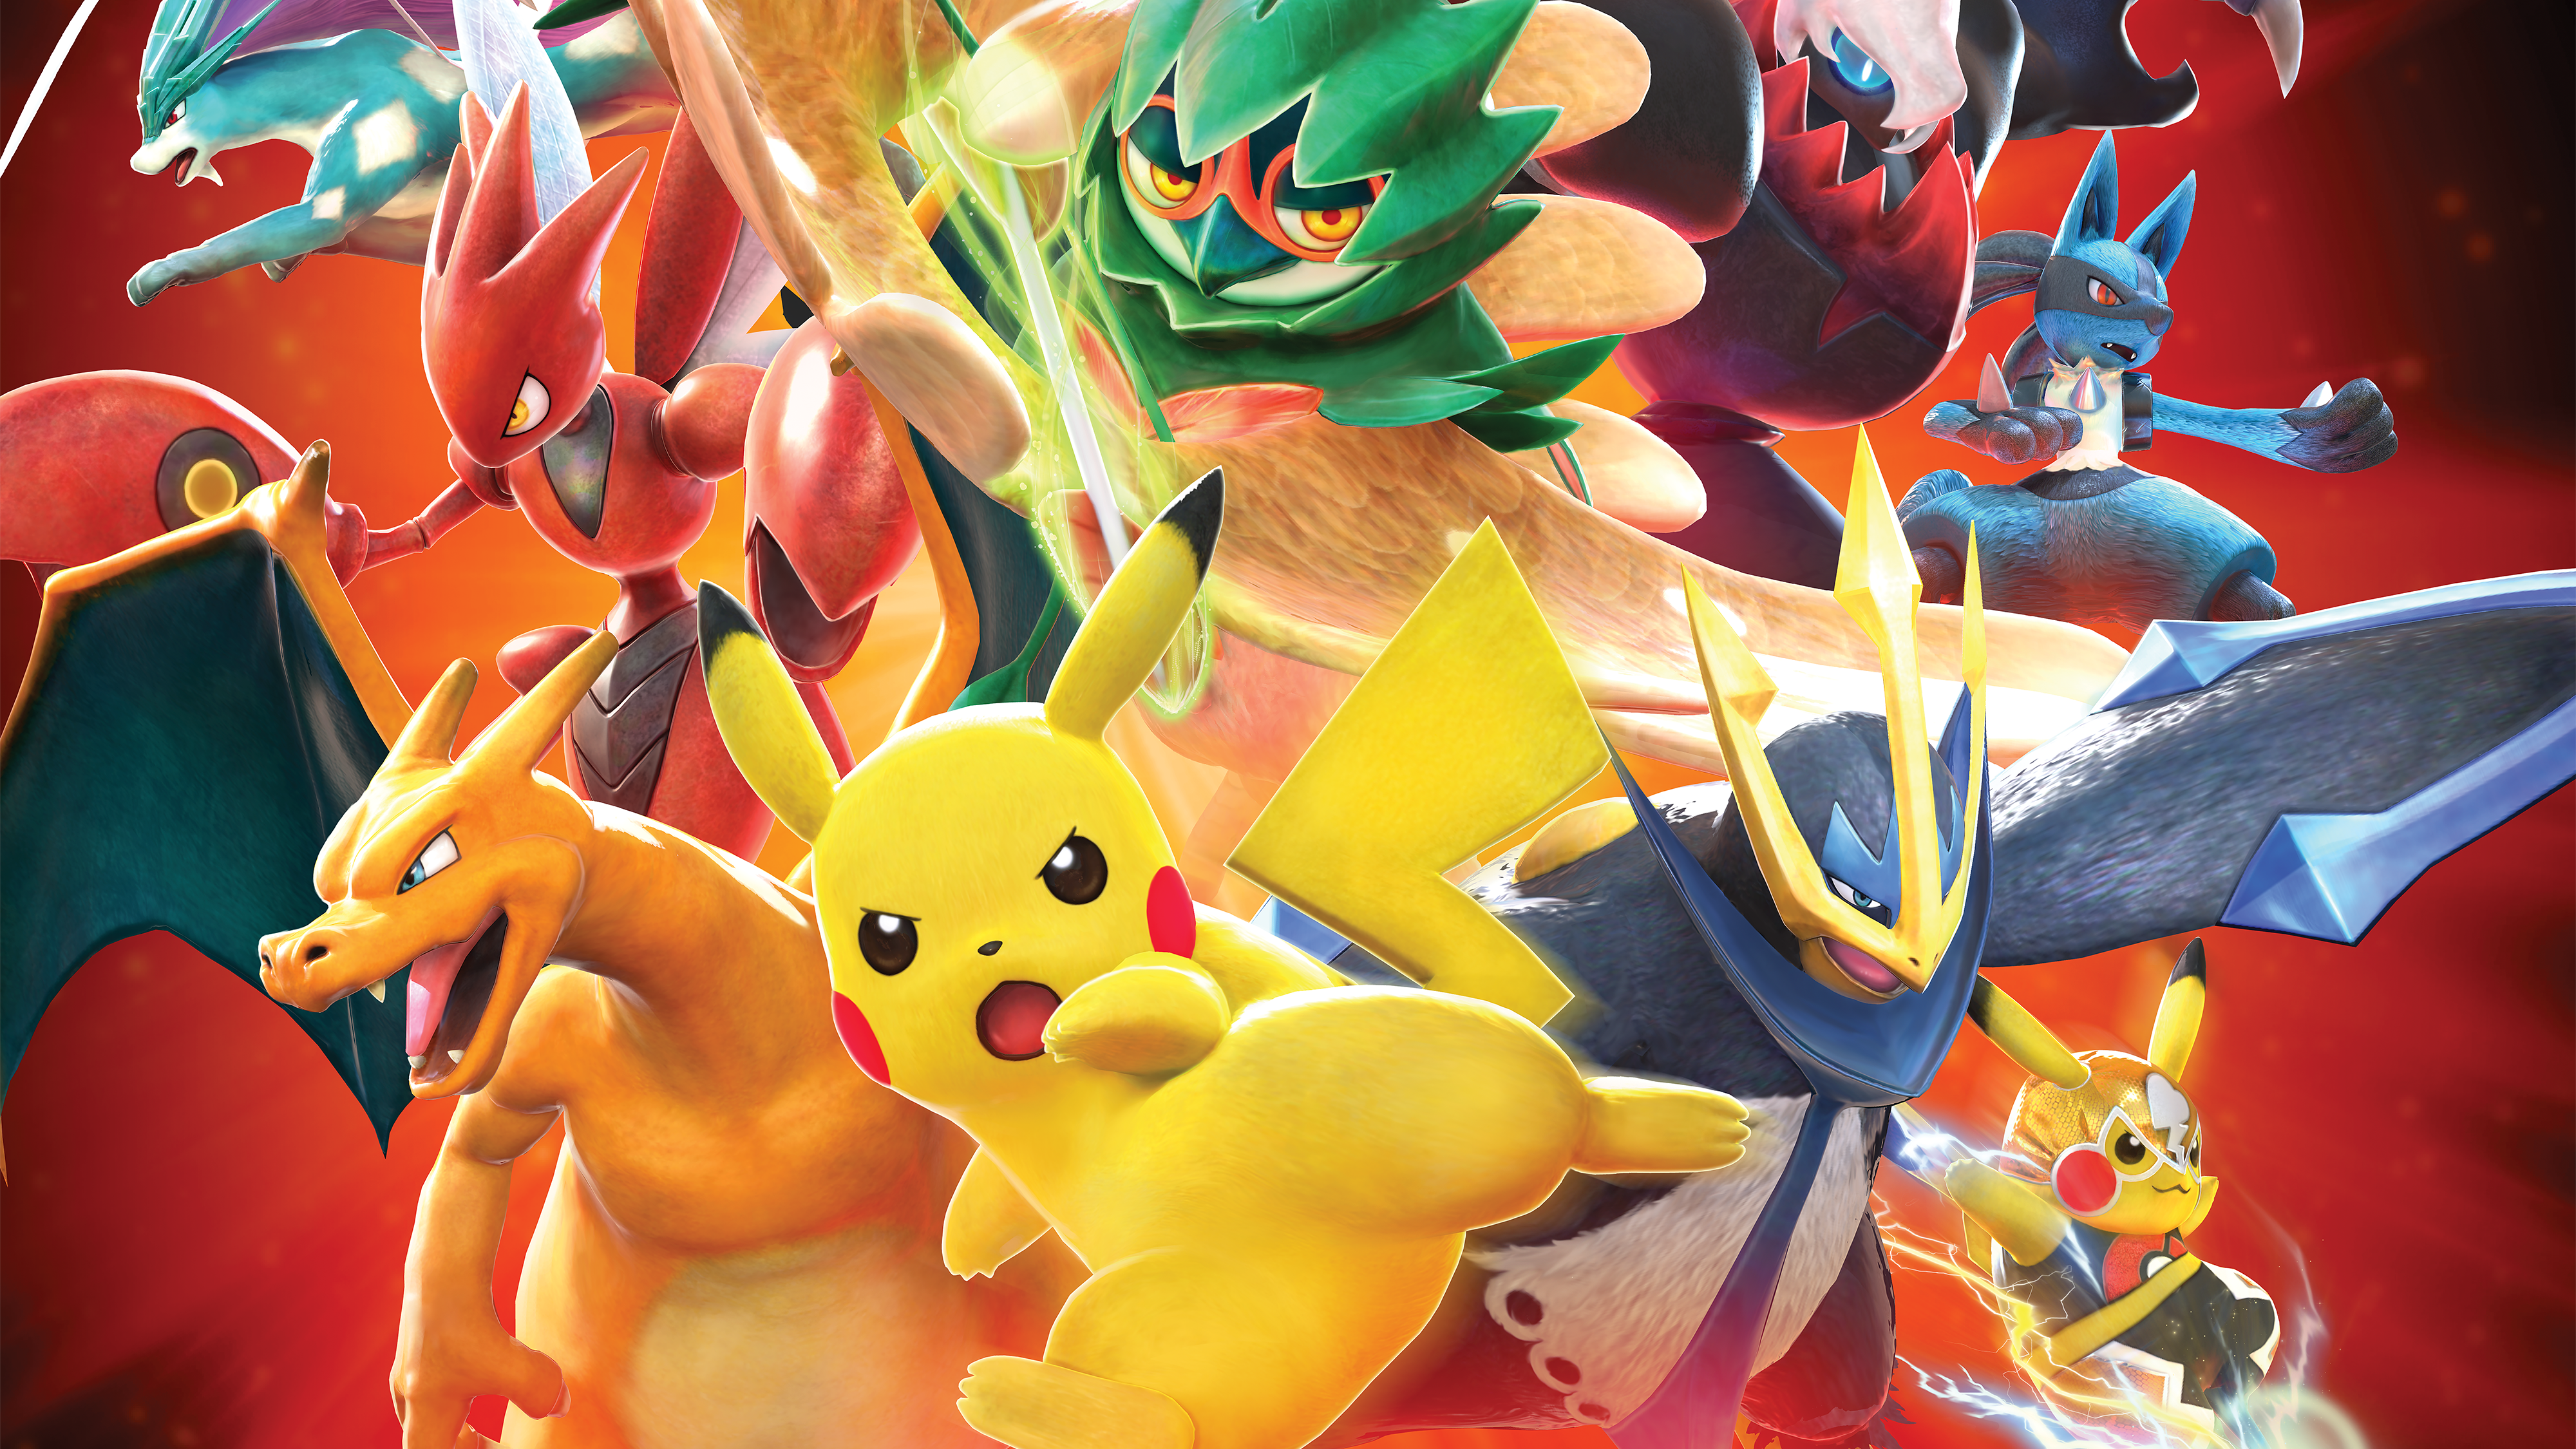 Tekken producer says he would like to work on Pokken Tournament 2, but it's down to Nintendo and Pokemon Company